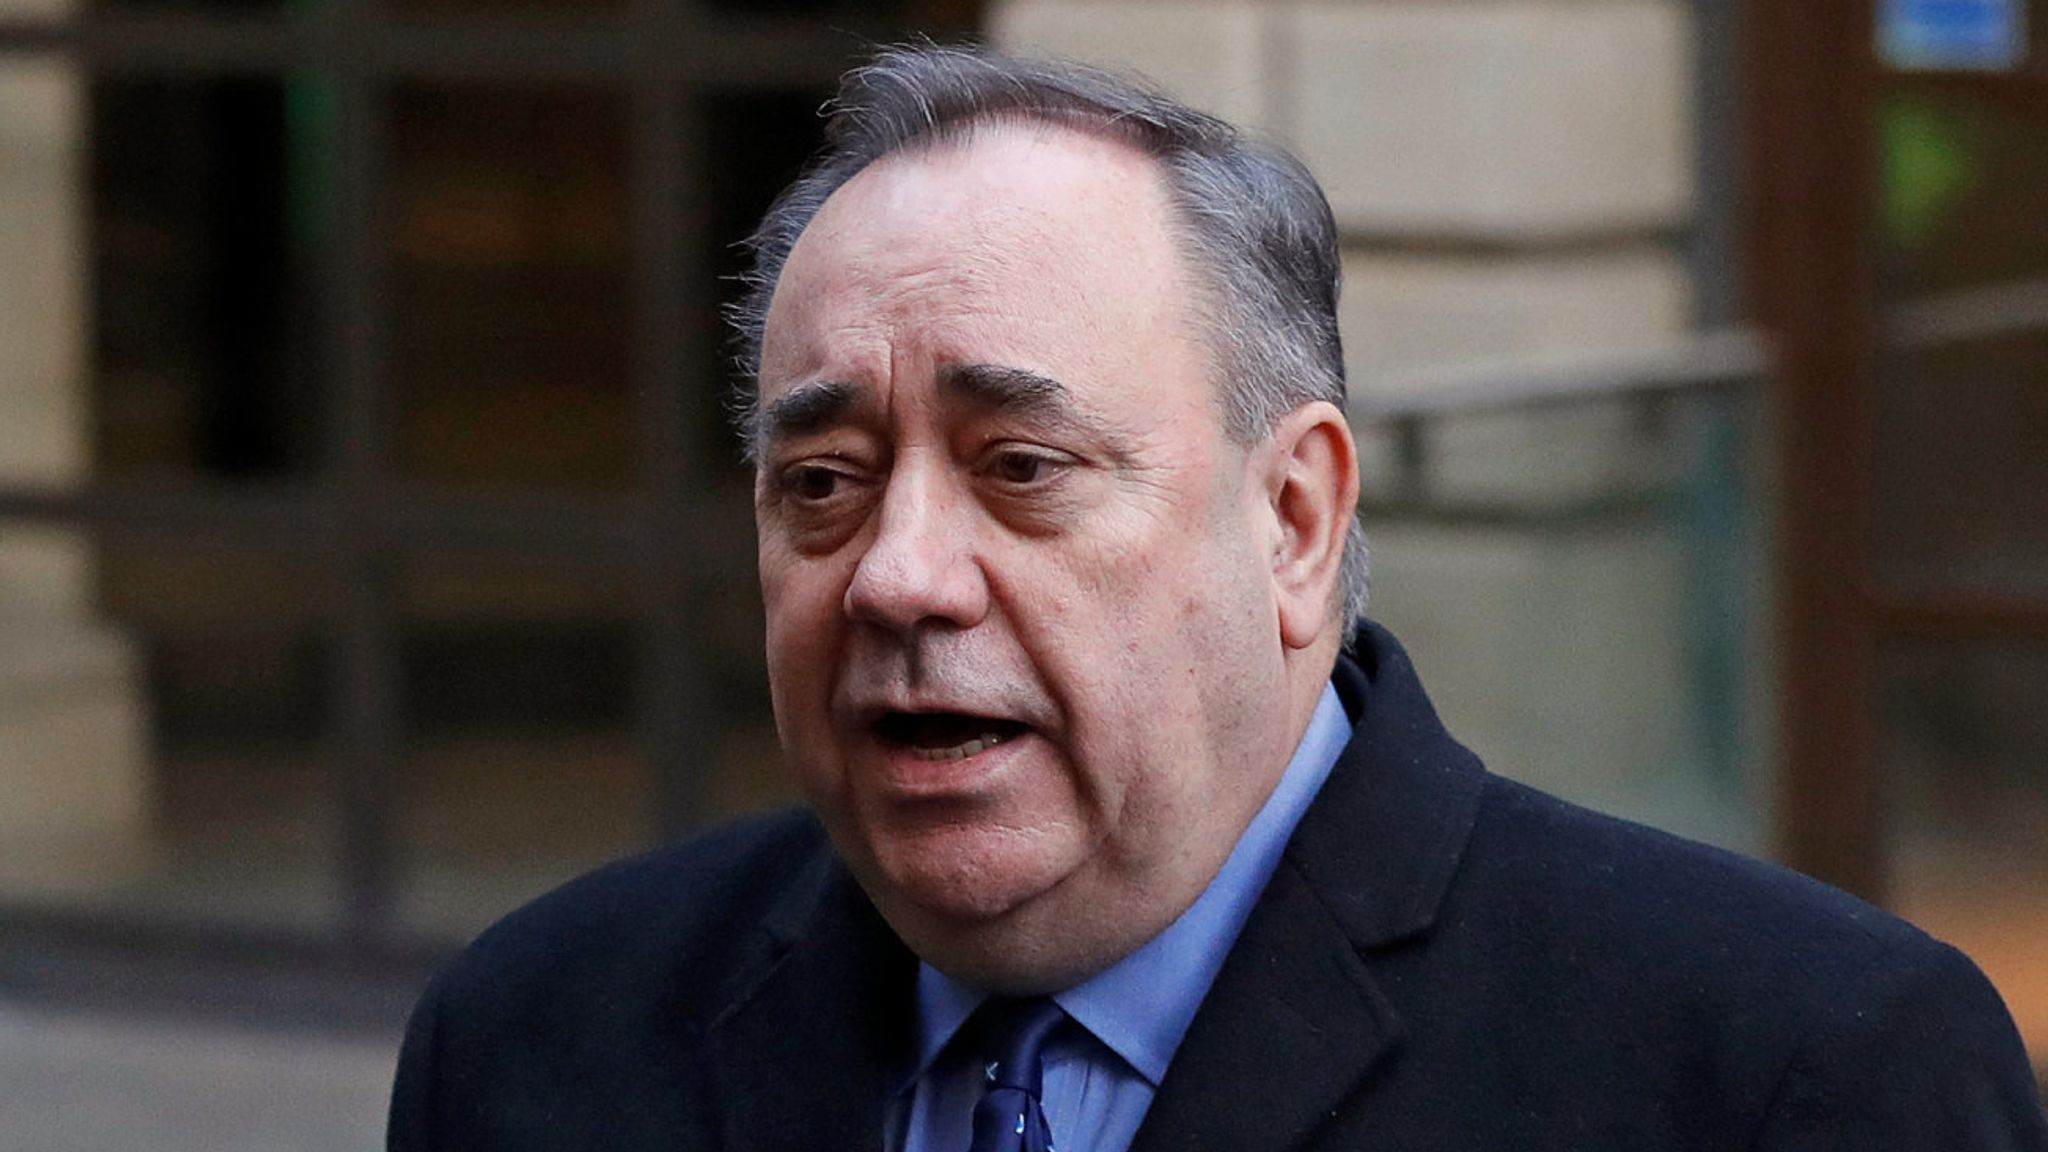 Alex Salmond accused of laying naked on woman and trying to rape her